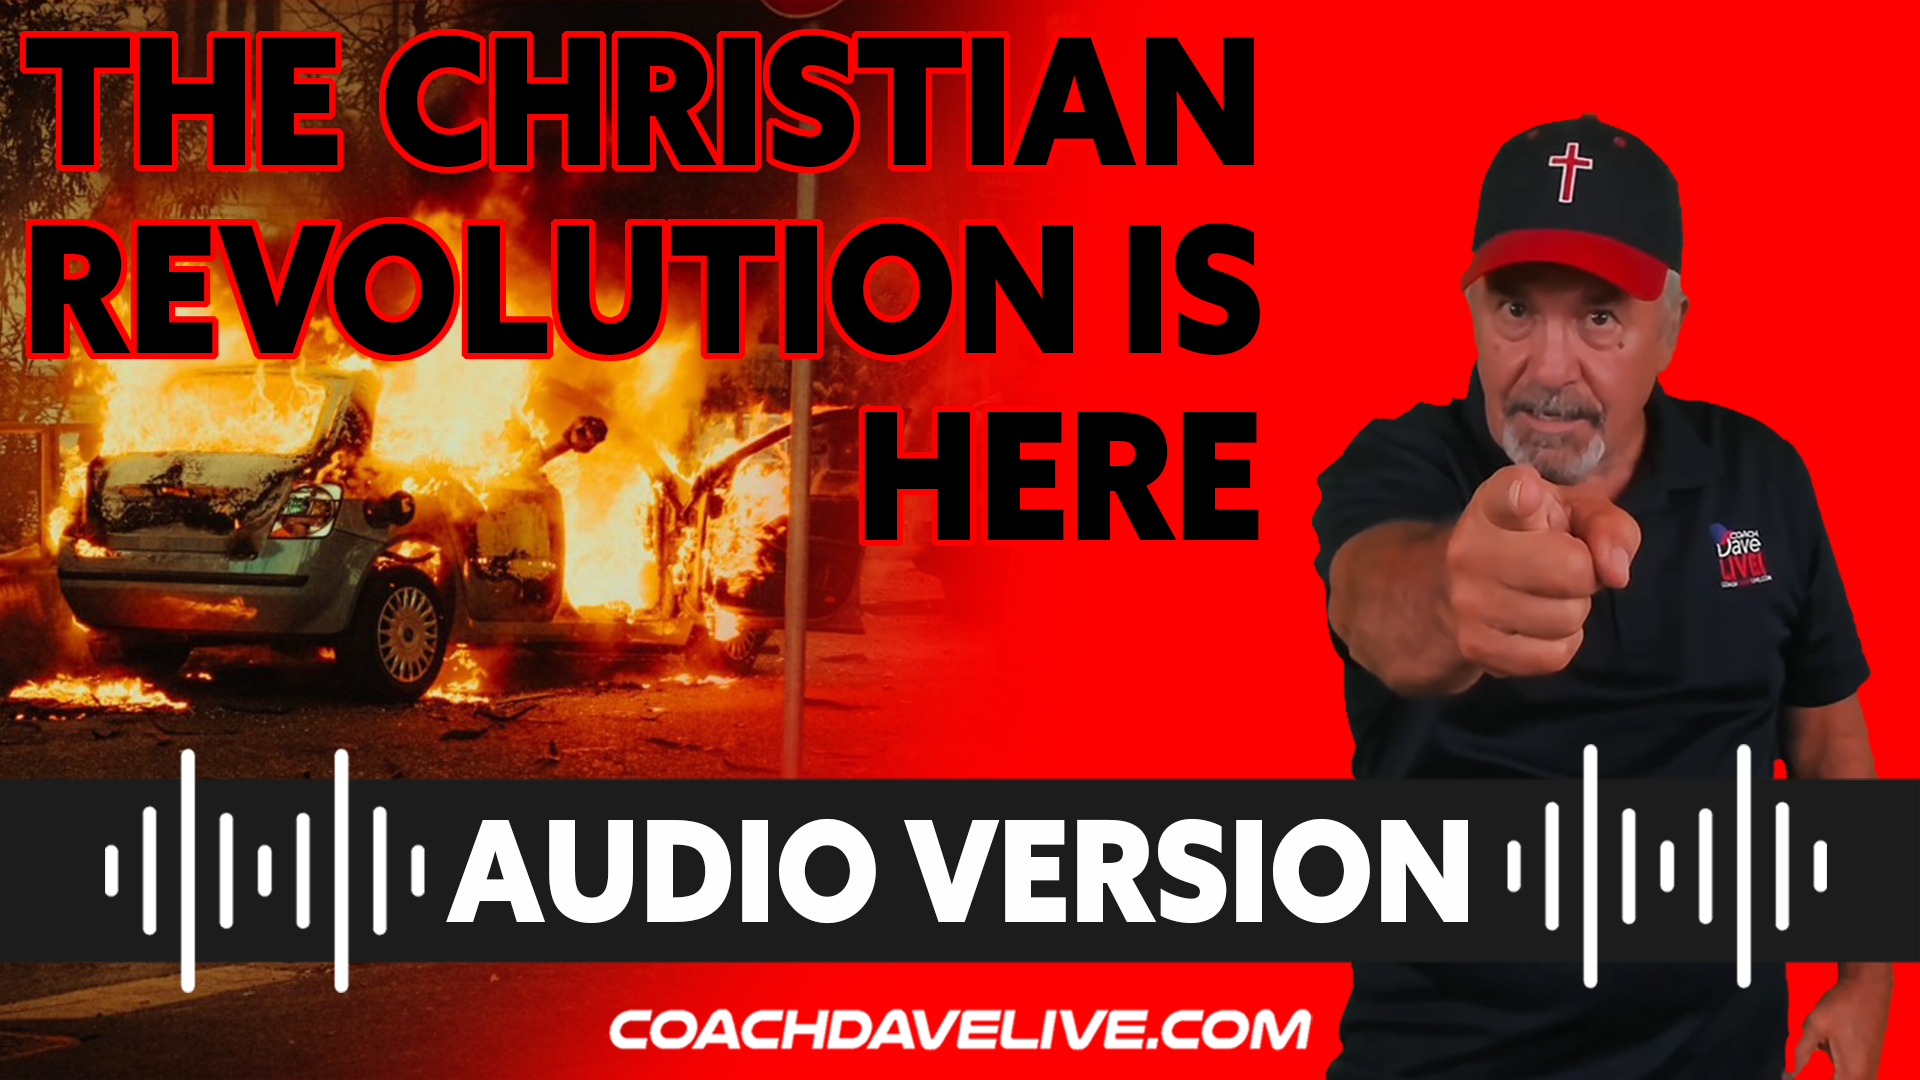 Coach Dave LIVE | 8-31-2021 | THE CHRISTIAN REVOLUTION IS HERE - AUDIO ONLY